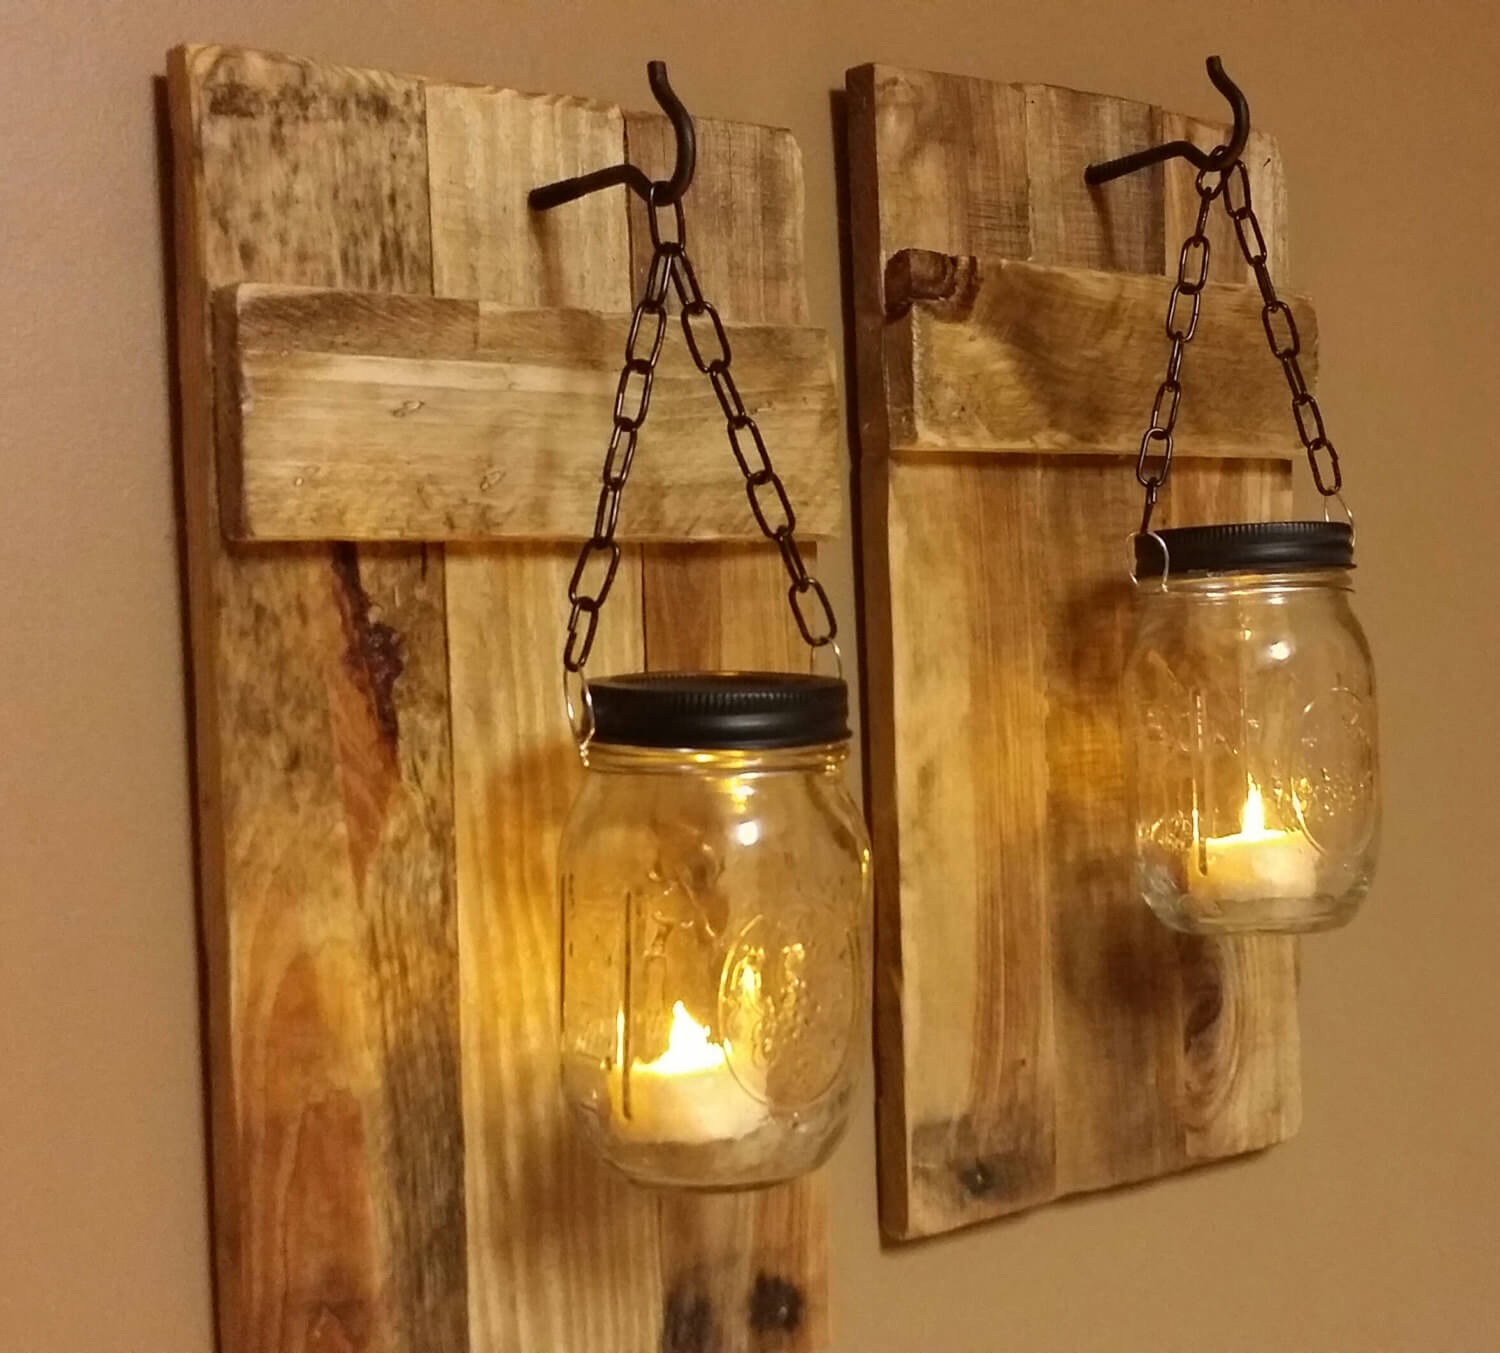 A Rustic Light on the Western Front